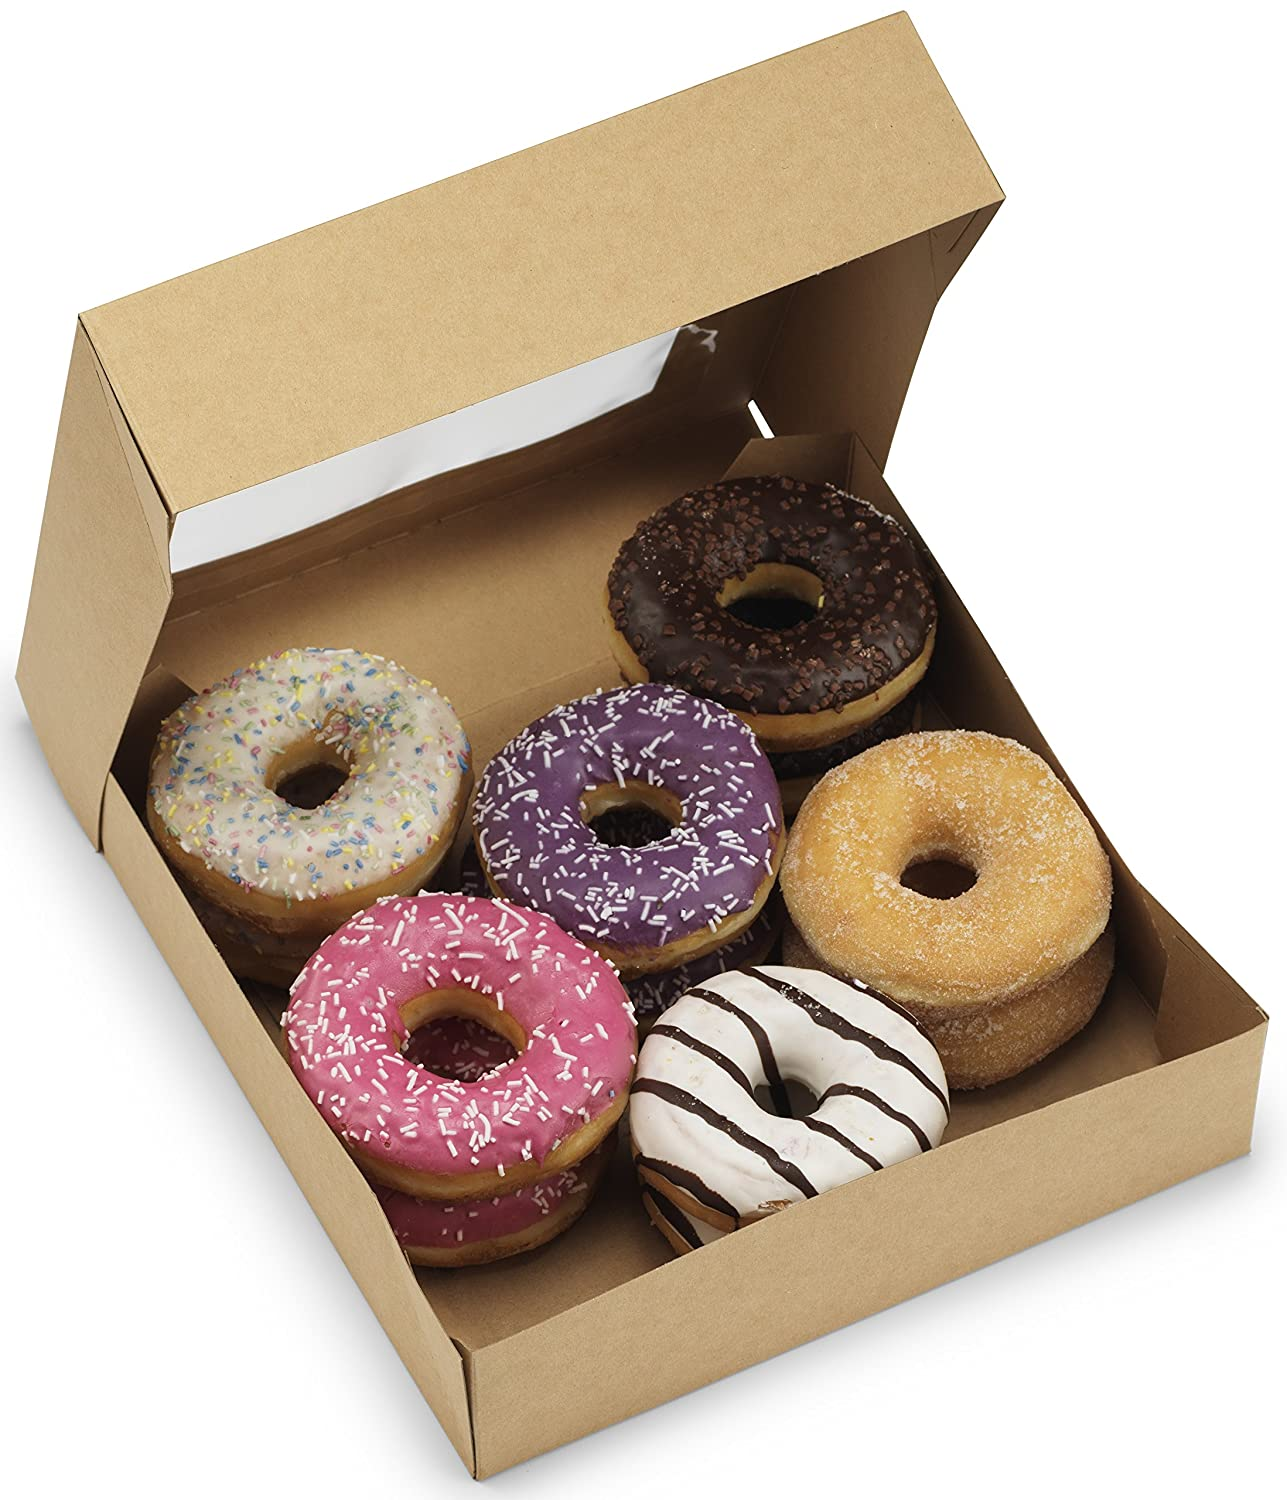 Thick Bakery Boxes 10x10x2.5 inches - [50 pack] - Premium Kraft Paperboard Containers With Window - By Cuisiner